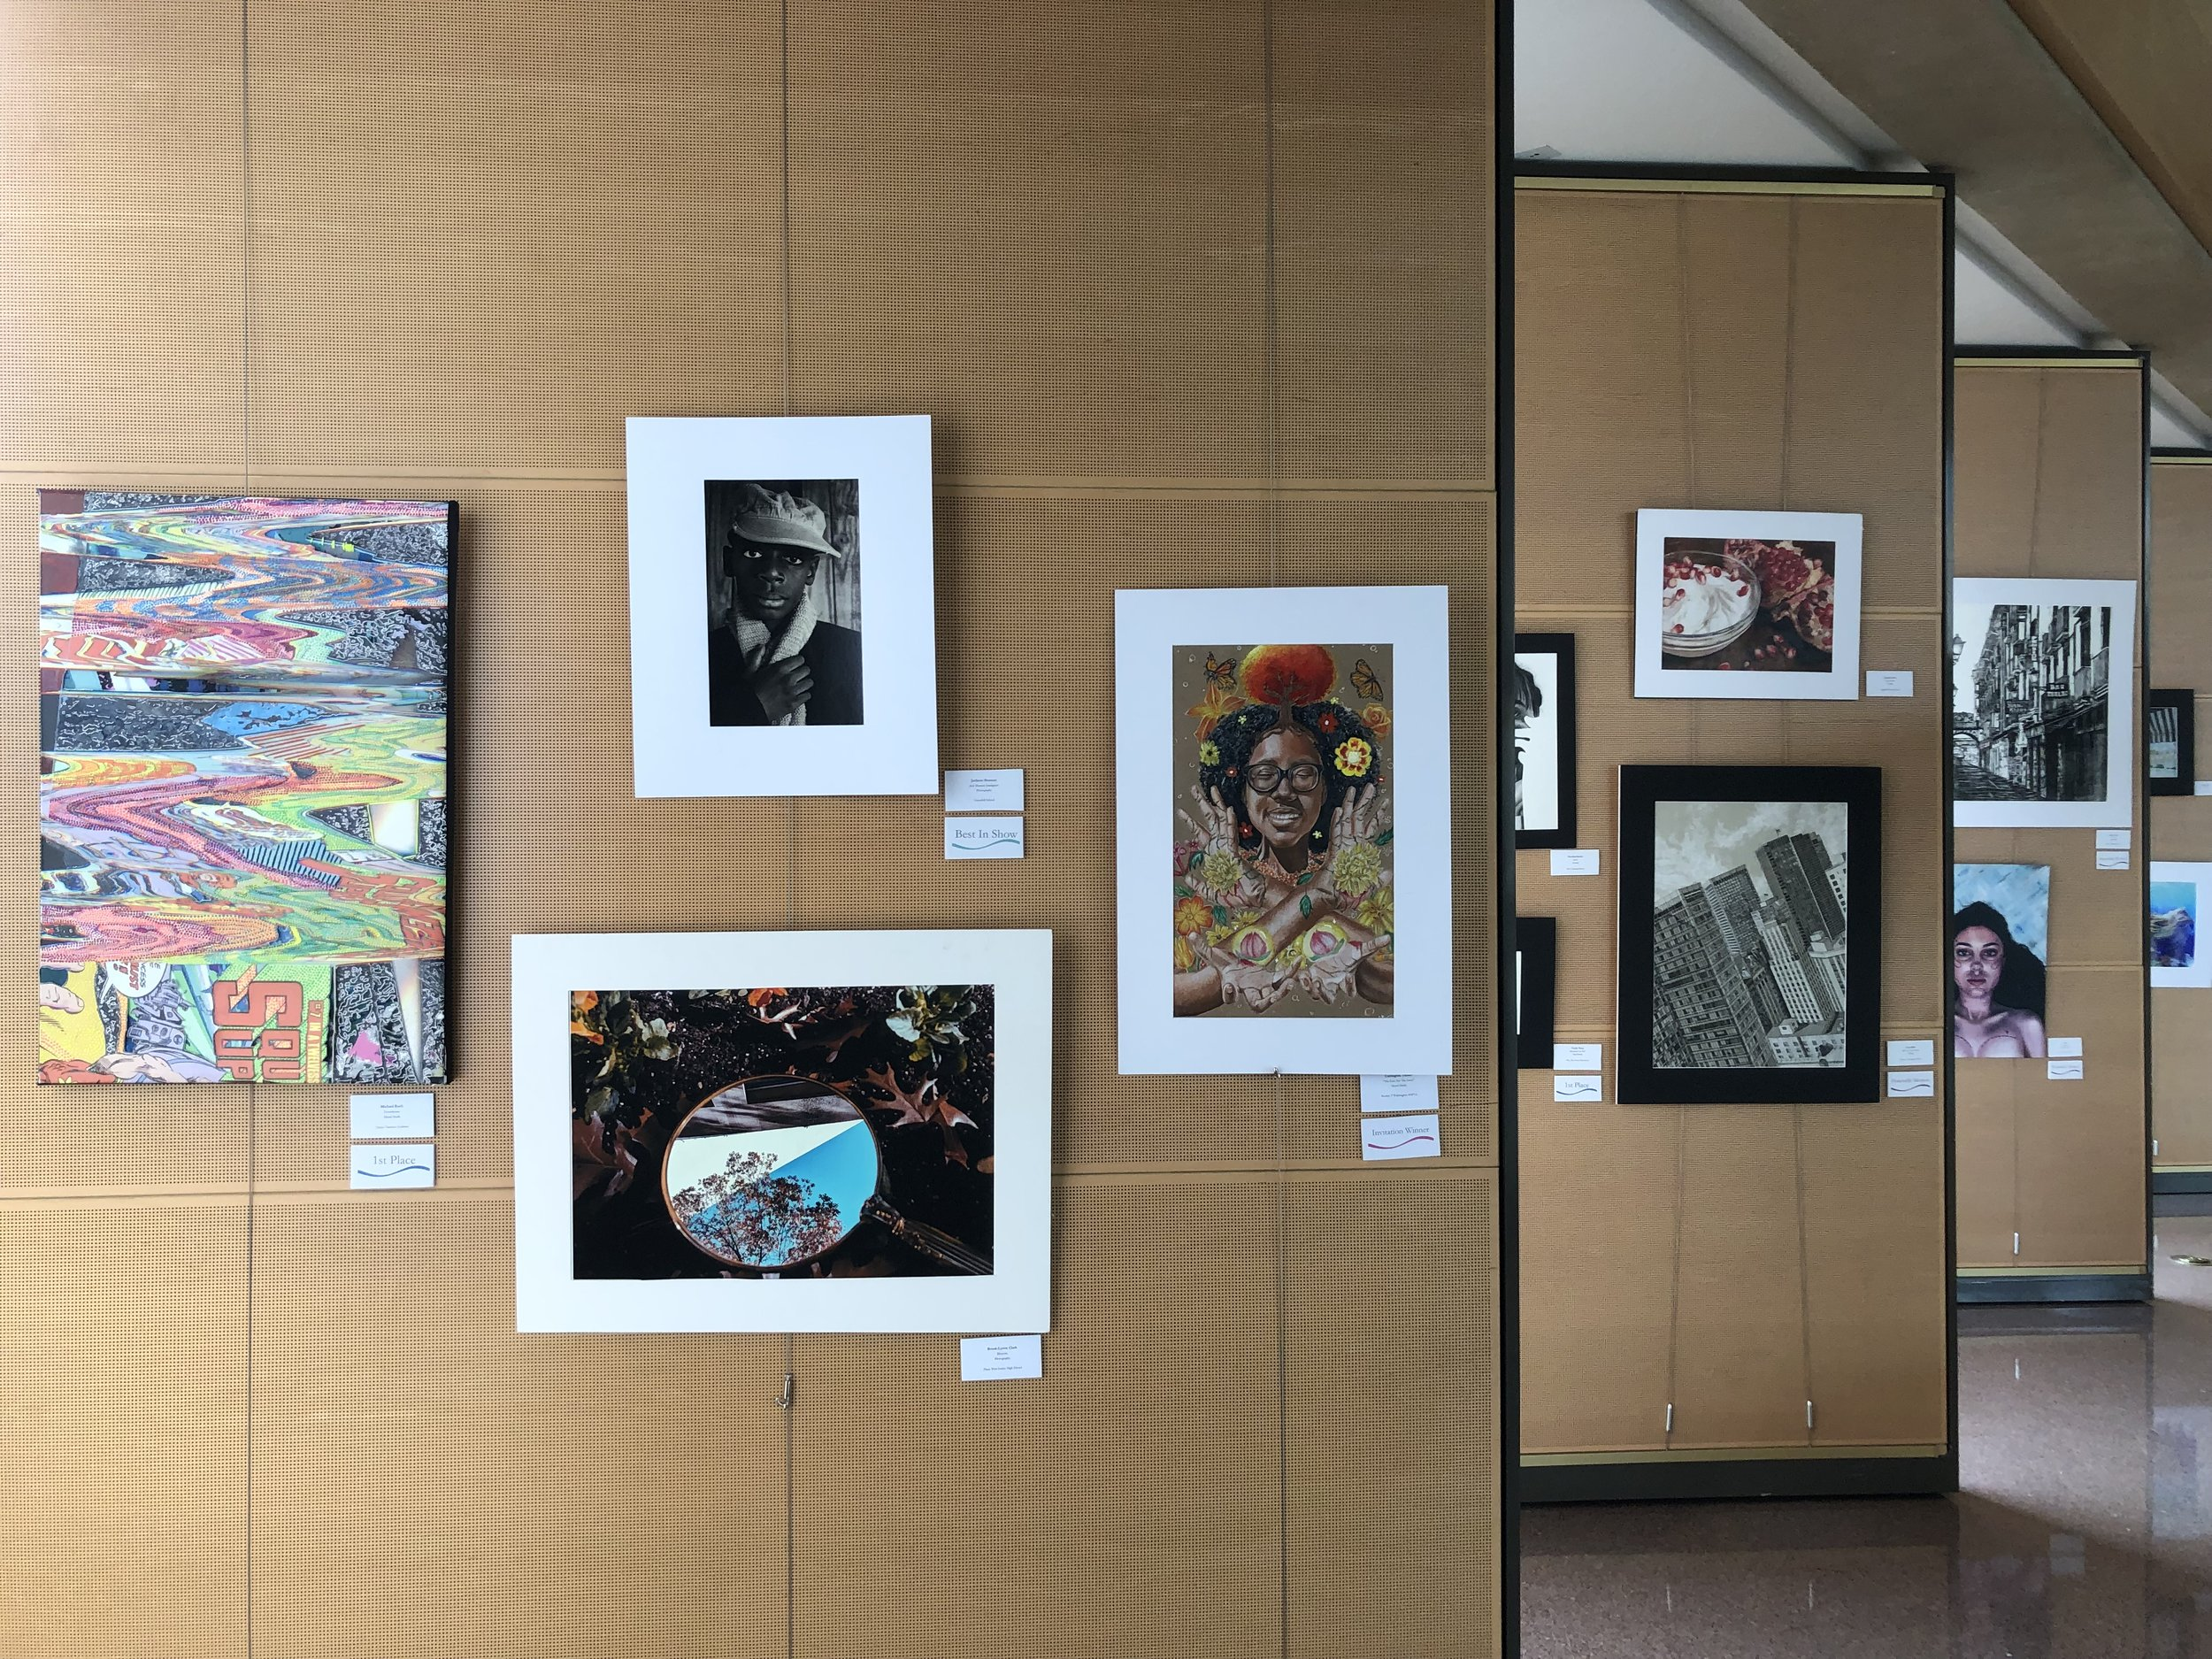 Encore Exhibit March 30th - April 24th - The YAT Winning Art Pieces and several finalists are invited to move to Dallas City Hall to be in the Encore Exhibit for Dallas Art Month. It is a great honor to have your art displayed in this 2nd show!